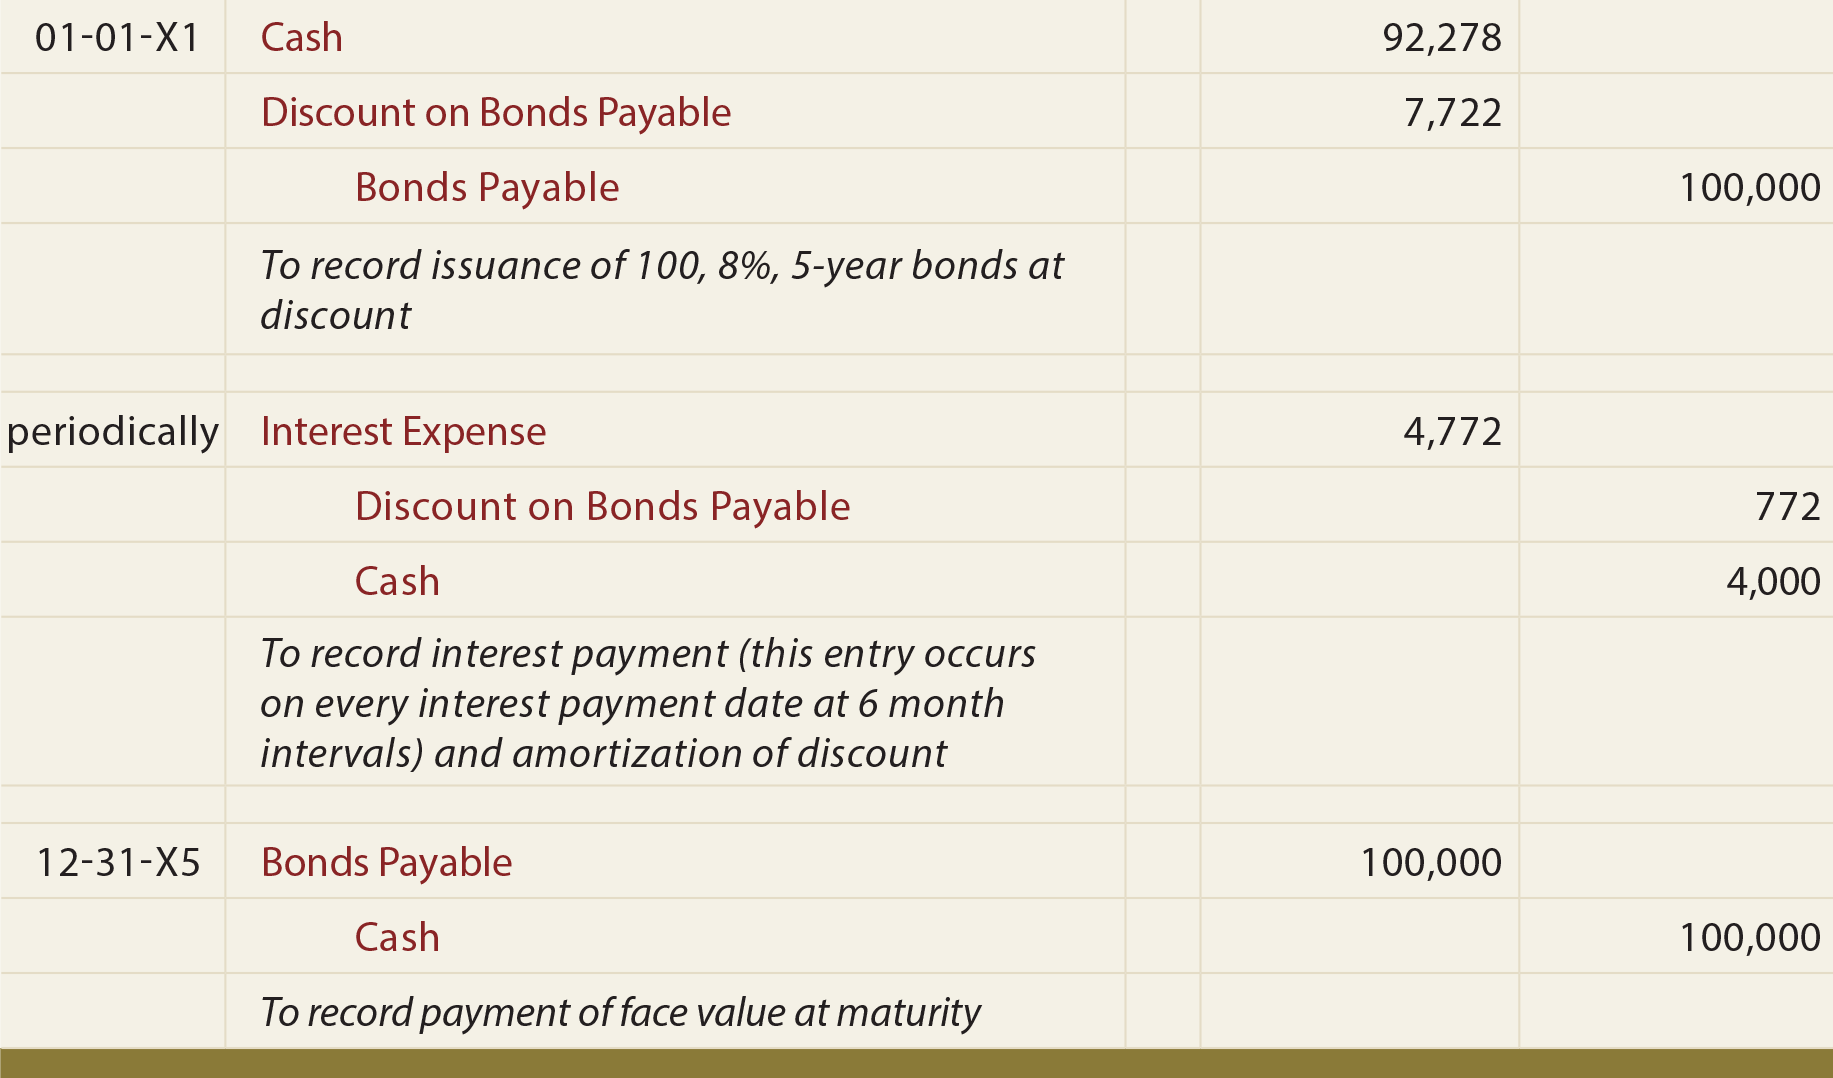 Bonds Payable at a Discount General Journal Entries - Bonds payable at discount